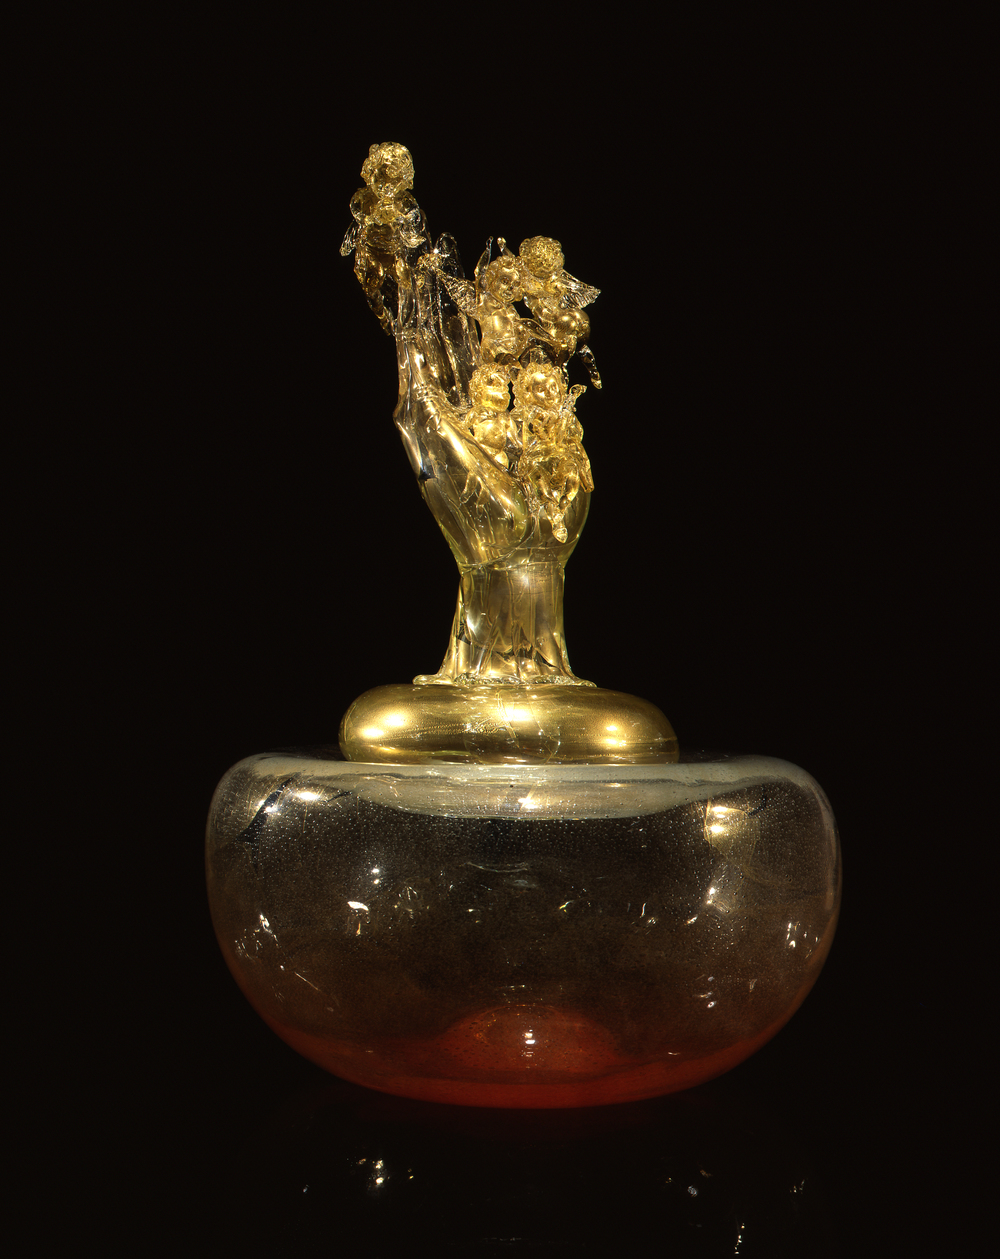 Dale Chihuly,  Stopper (Putti and the Hand)  (1994-1997, glass, 33 x 22 x 22 inches)